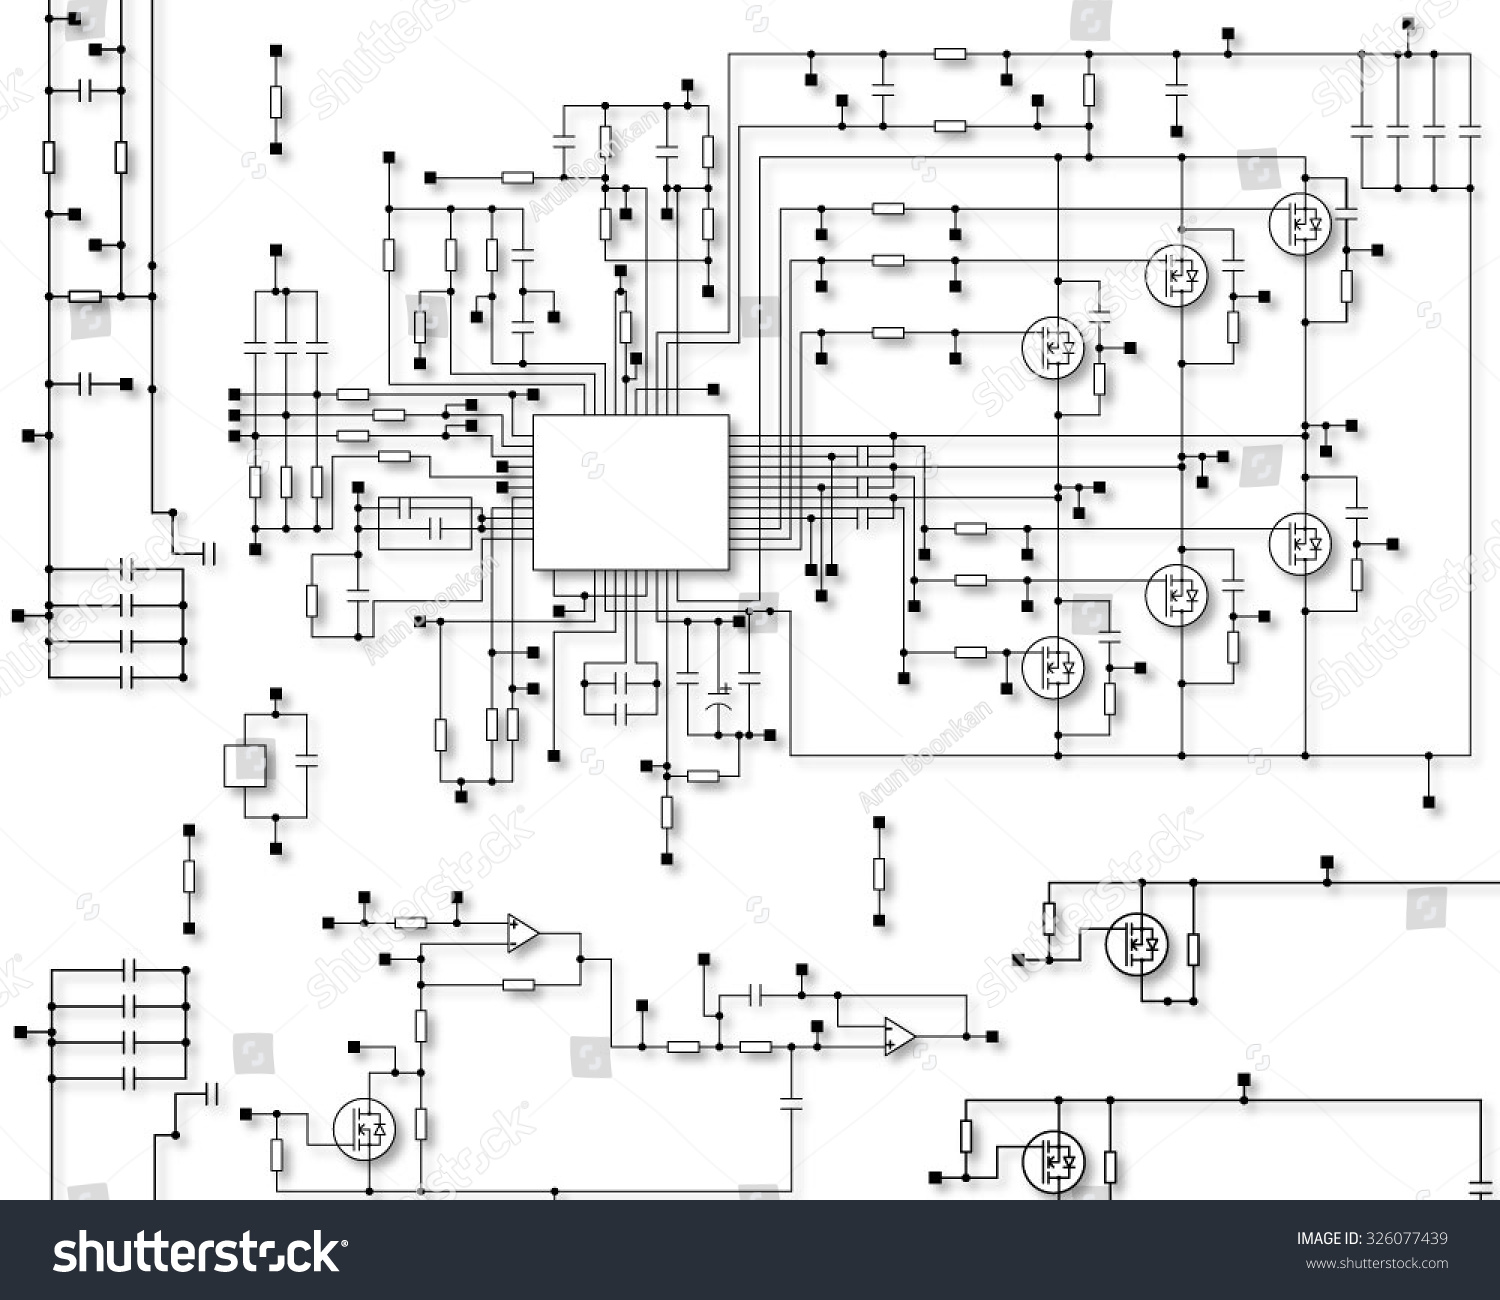 Schematic Diagram Project Electronic Circuit Graphic Stock Vector Projects Schematics Of